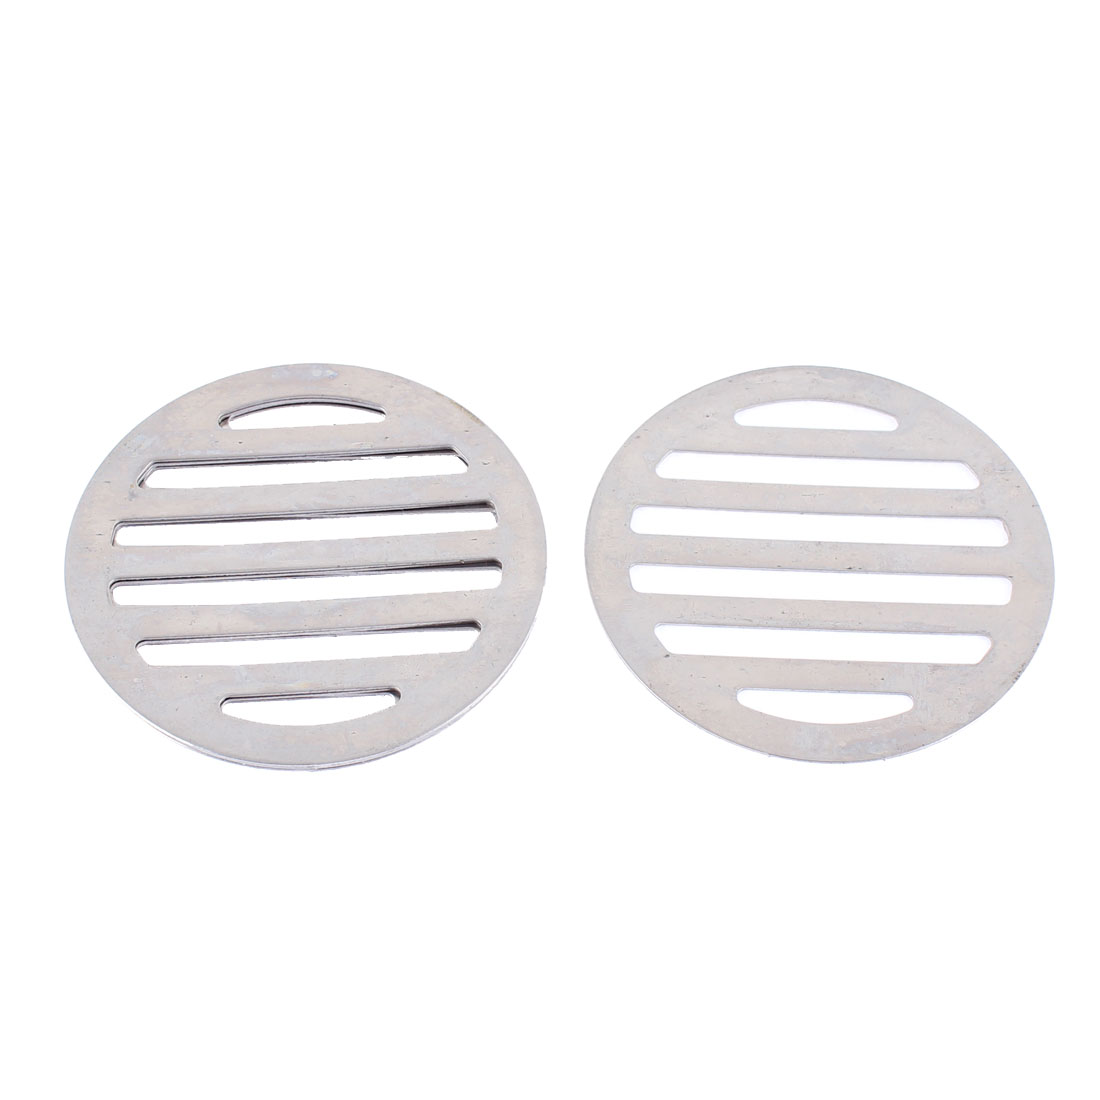 "Stainless Steel Kitchen Bathroom Round Floor Drain Cover 3"" 7.5cm 5Pcs"